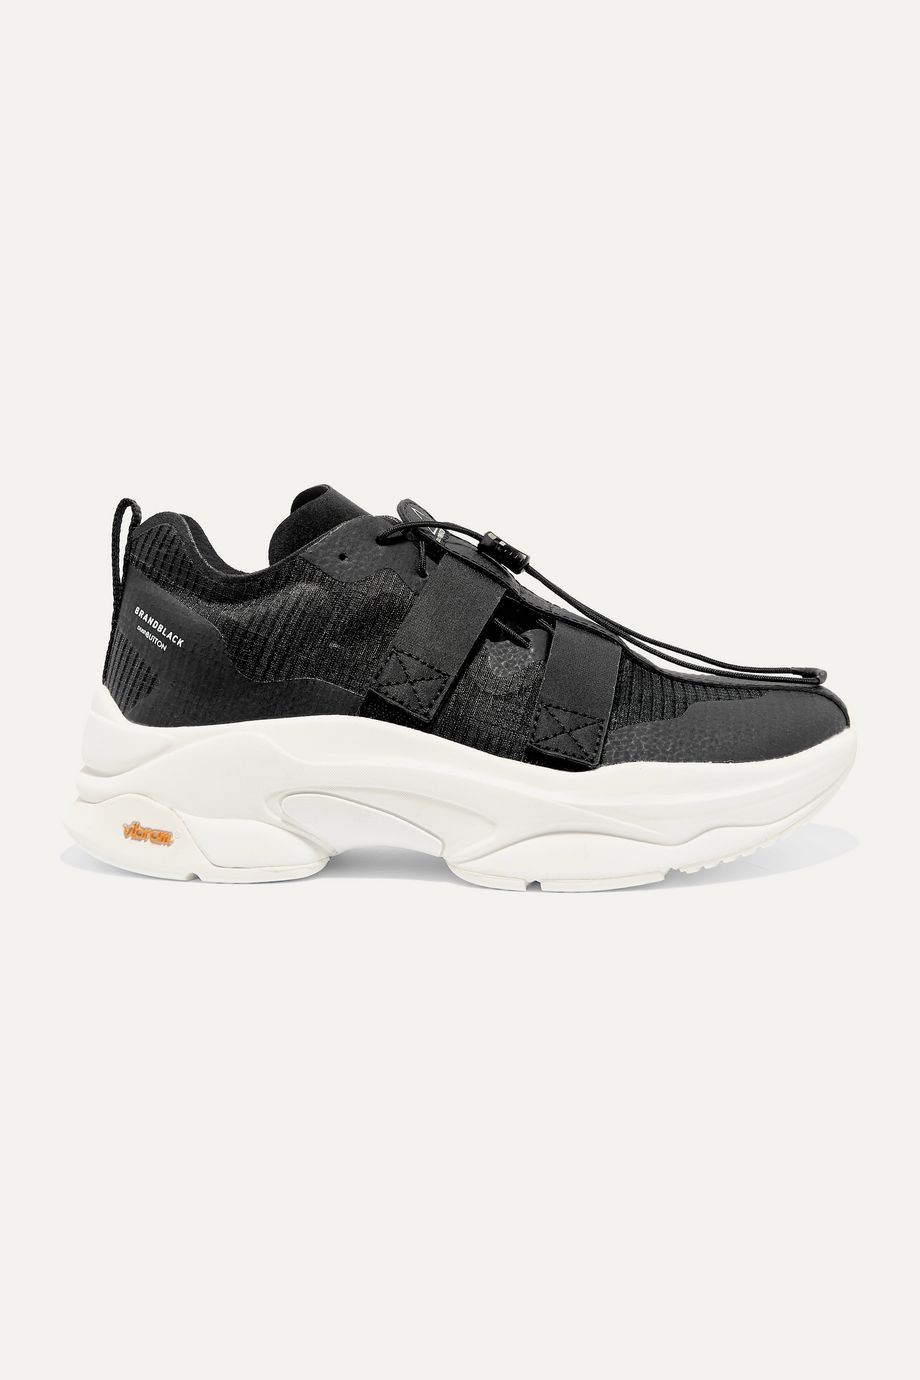 Brandblack + Pushbutton Specter ripstop and neoprene sneakers